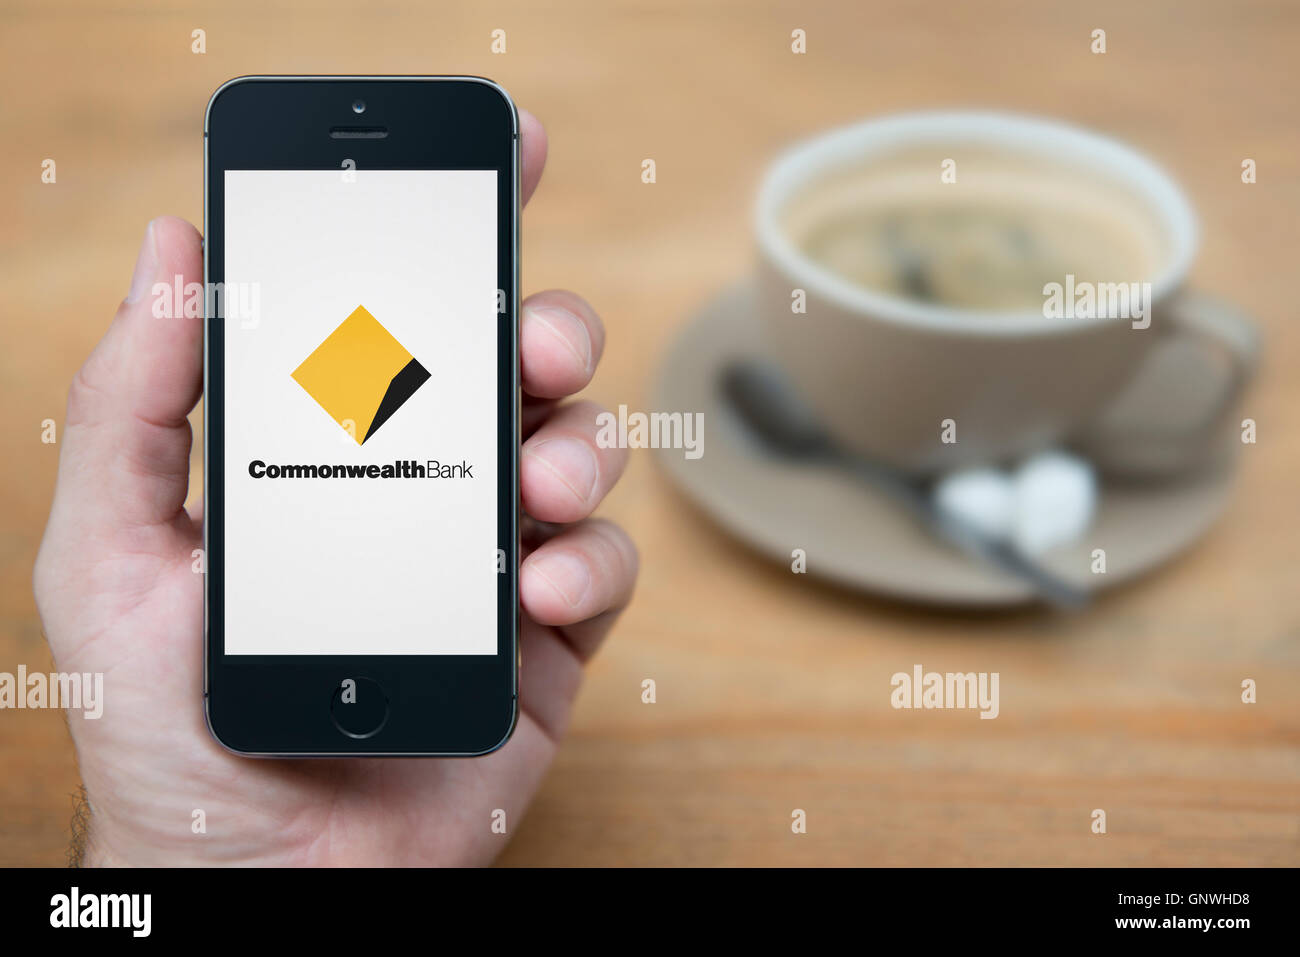 A man looks at his iPhone which displays the Commonwealth Bank logo, while sat with a cup of coffee (Editorial use - Stock Image